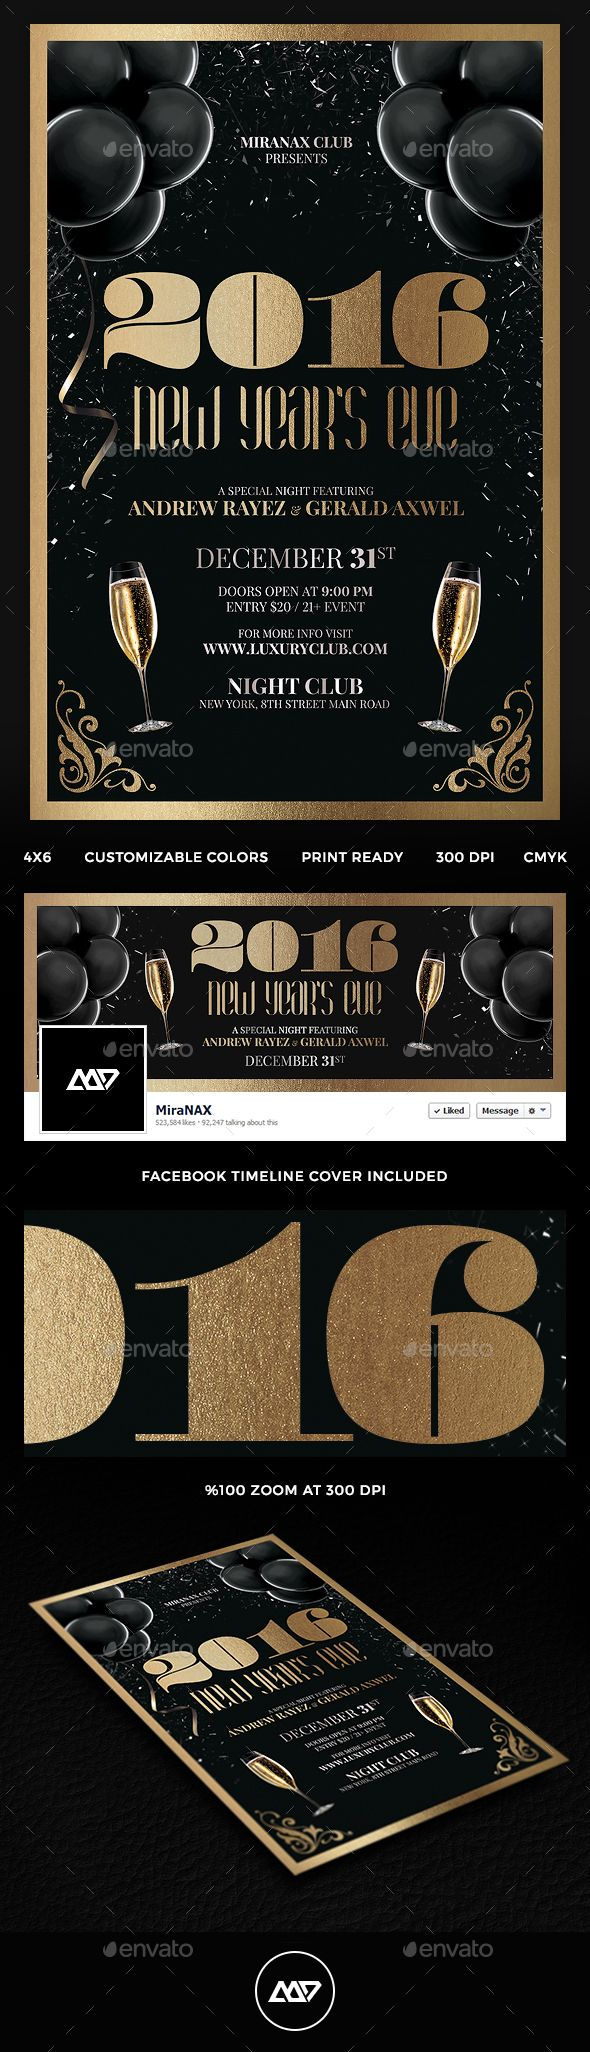 New Year Party Flyer Template PSD #design Download: http://graphicriver.net/item/new-year-party-flyer/13780739?ref=ksioks